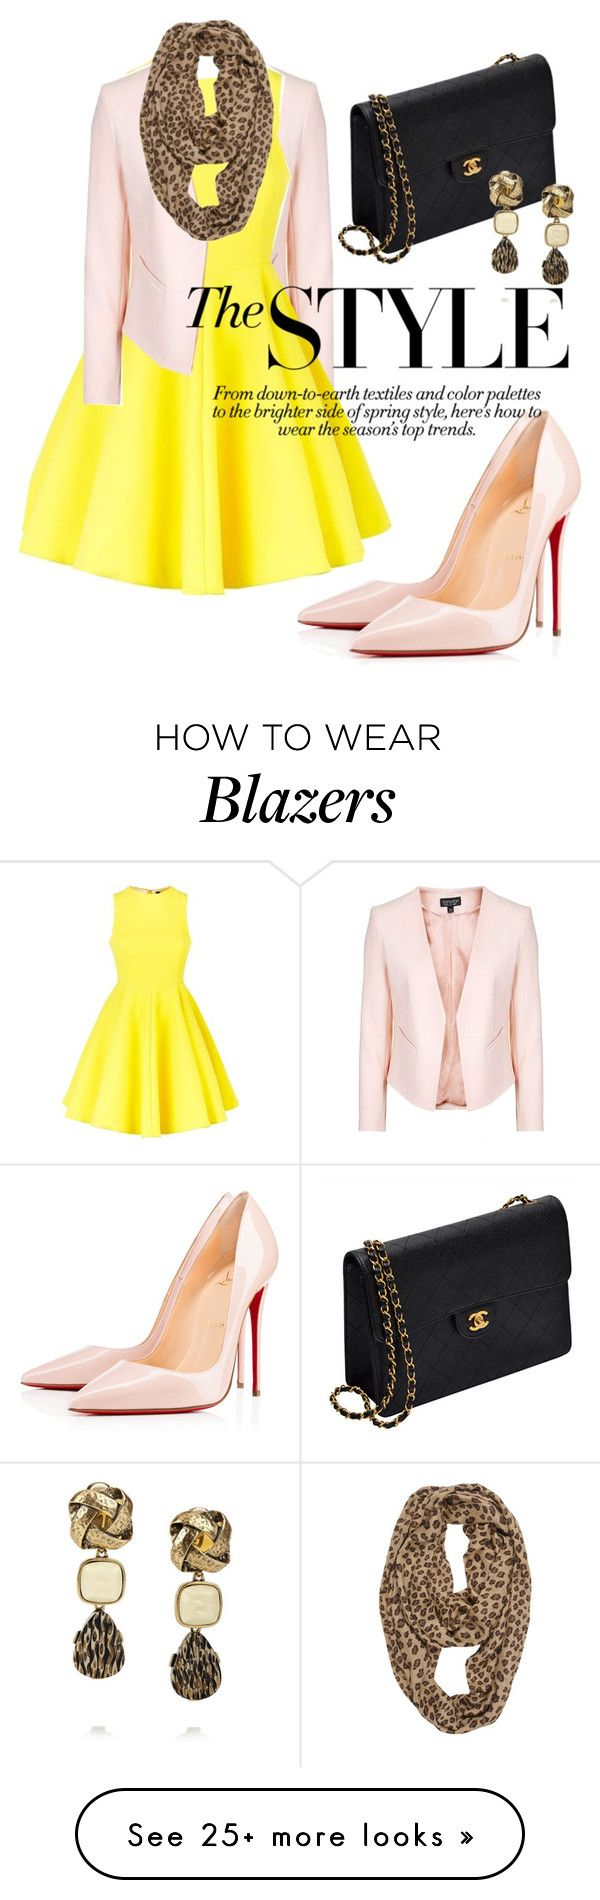 """""""sate kambing#indonesia"""" by omahtawon on Polyvore featuring Topshop, AQ/AQ, Chanel, Tolani, Christian Louboutin and Oscar de la Renta"""